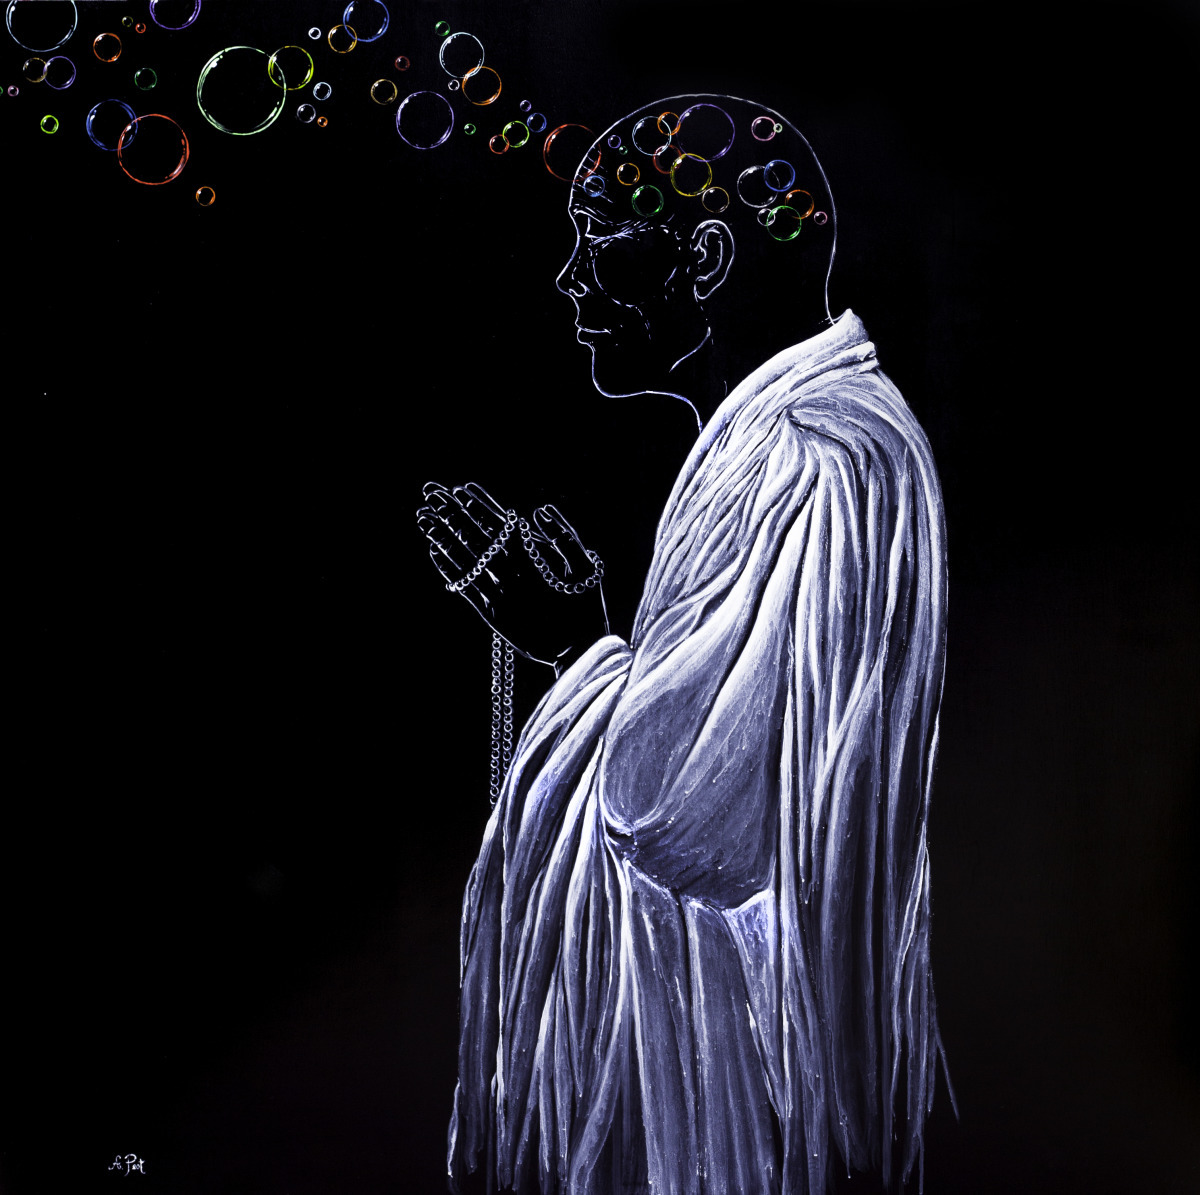 Adam Peot art, painting of a meditative monk whose thoughts are like bubbles,   or thoughts are like clouds passing in the sky, impermanent  (large view)